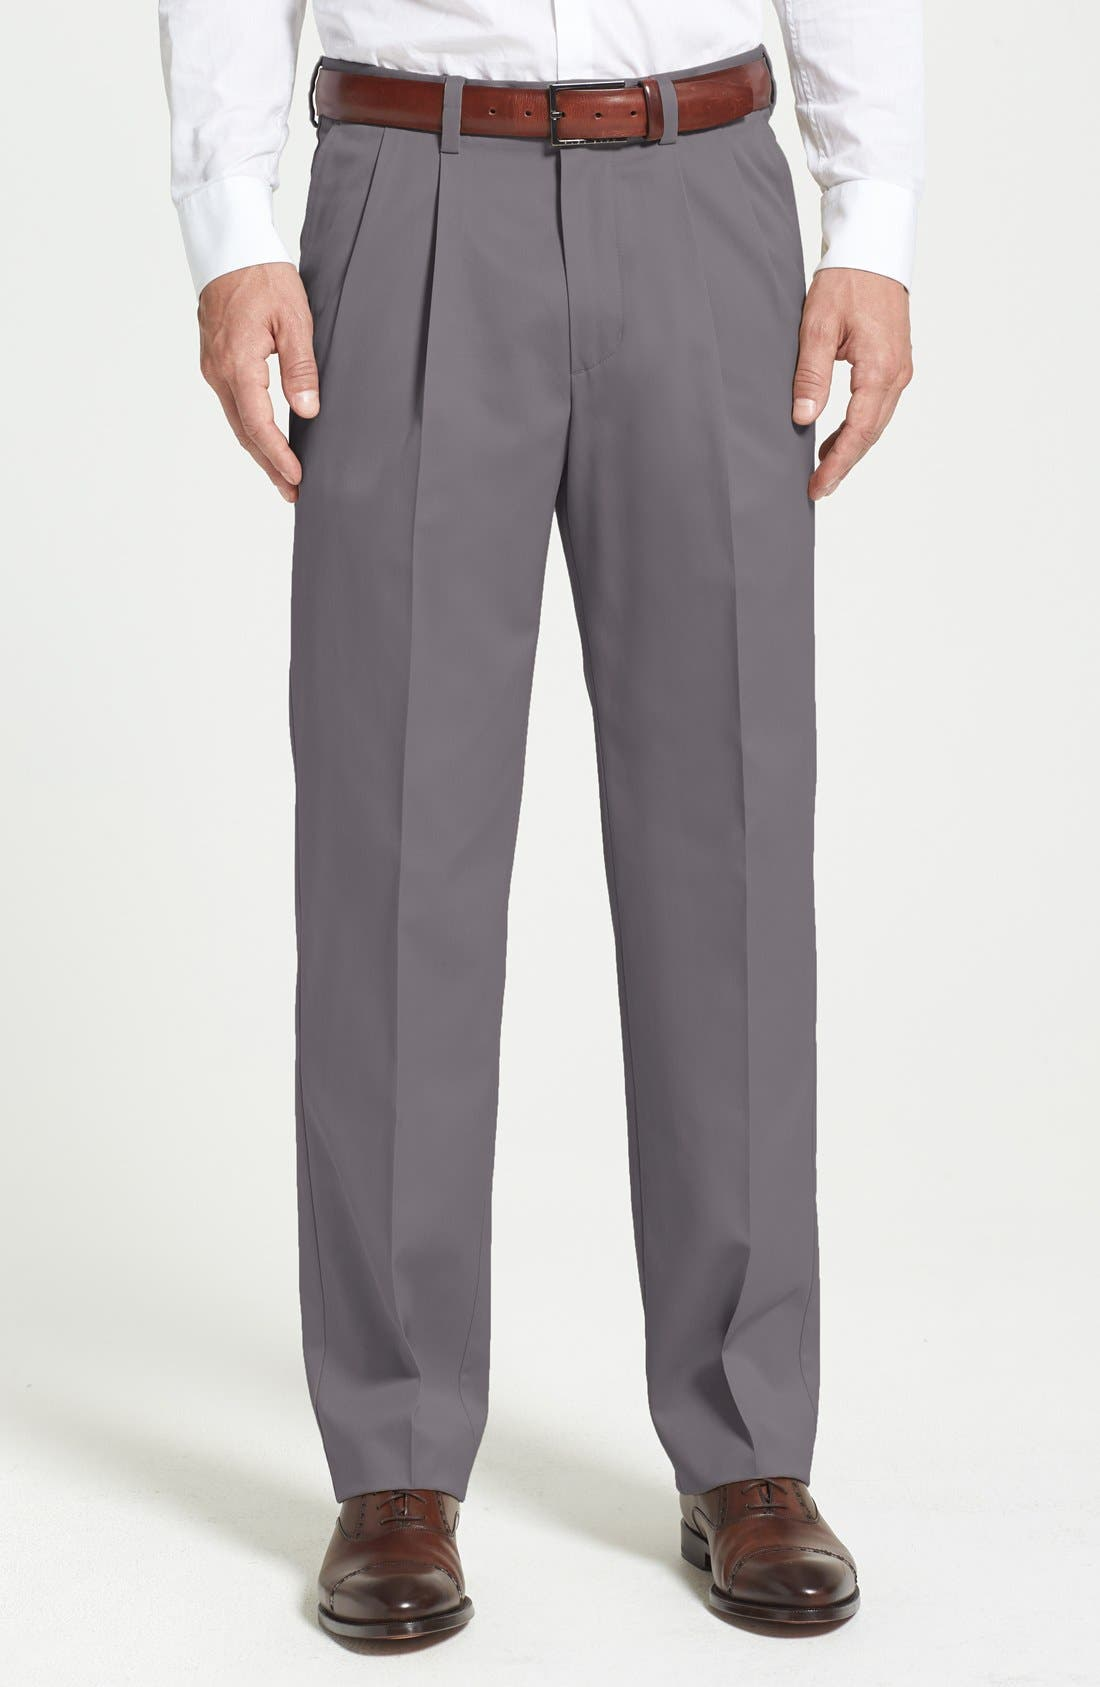 Dressing appropriately for a sophisticated or professional occasion is effortless with Brooks Brothers' exceptional collection of men's dress pants, slacks and trousers. Our dress pants for men are available in an assortment of colors and patterns to easily pair with a variety of slim fit dress shirts, sport coats, blazers and jackets. Crafted from fine materials like crisp cotton and classic wool, our dress trousers .